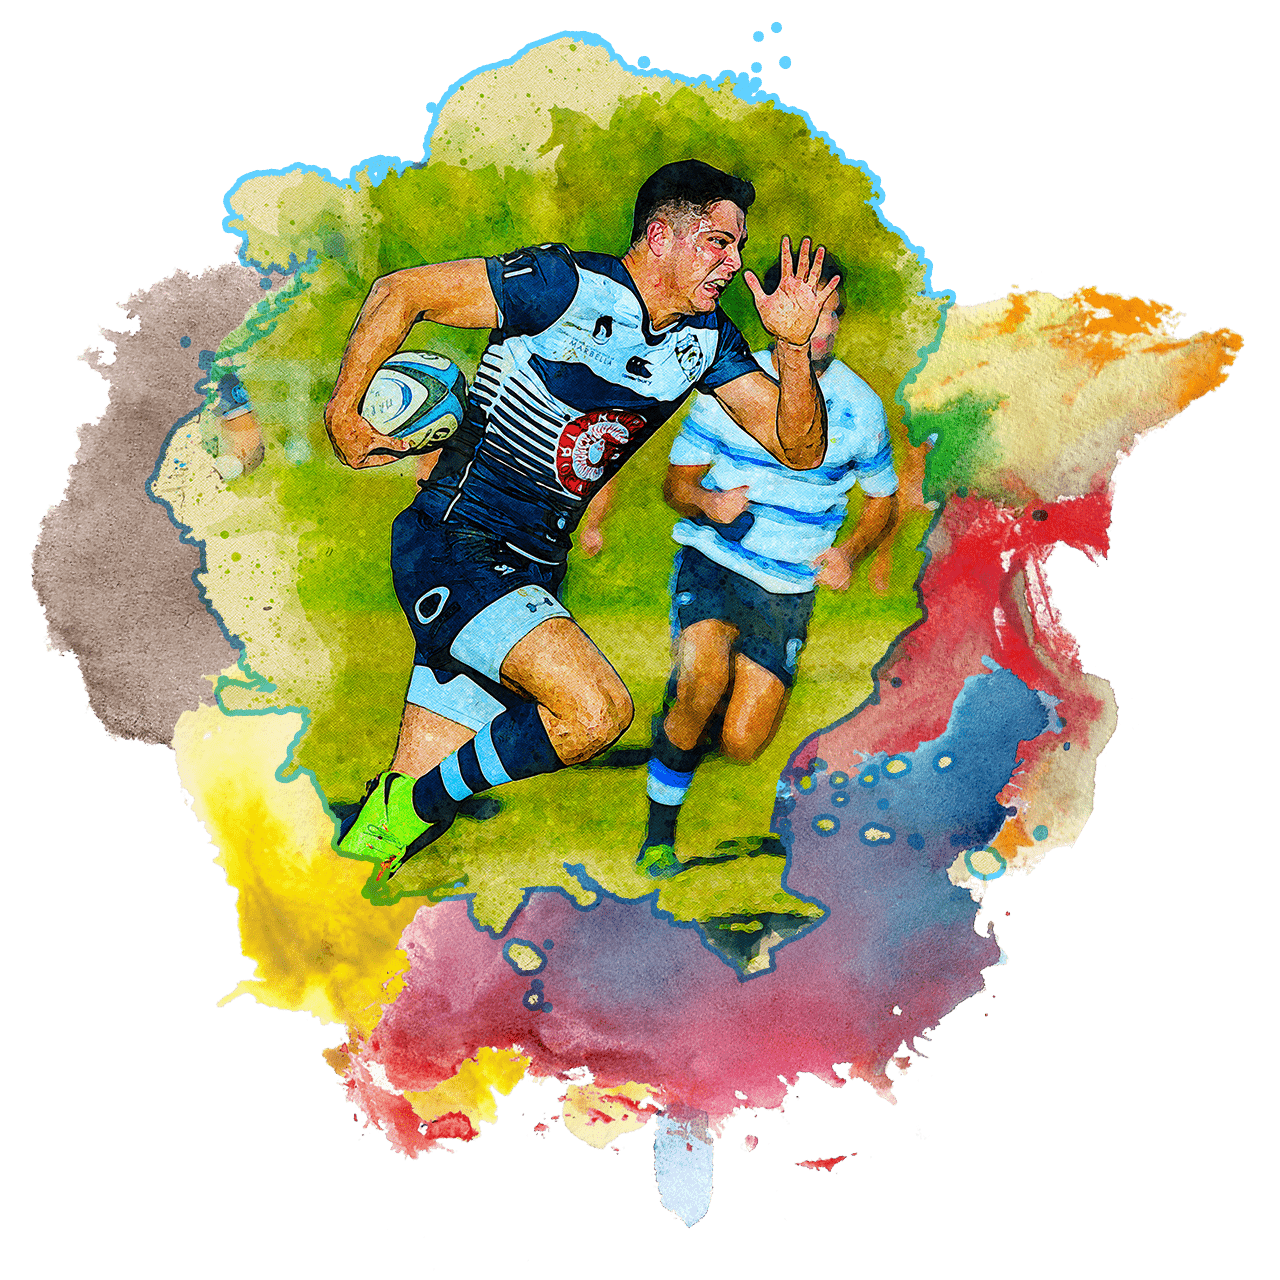 5th-Place__Water-colour-splash-images__Sports-performance-enhancement-01-rugby